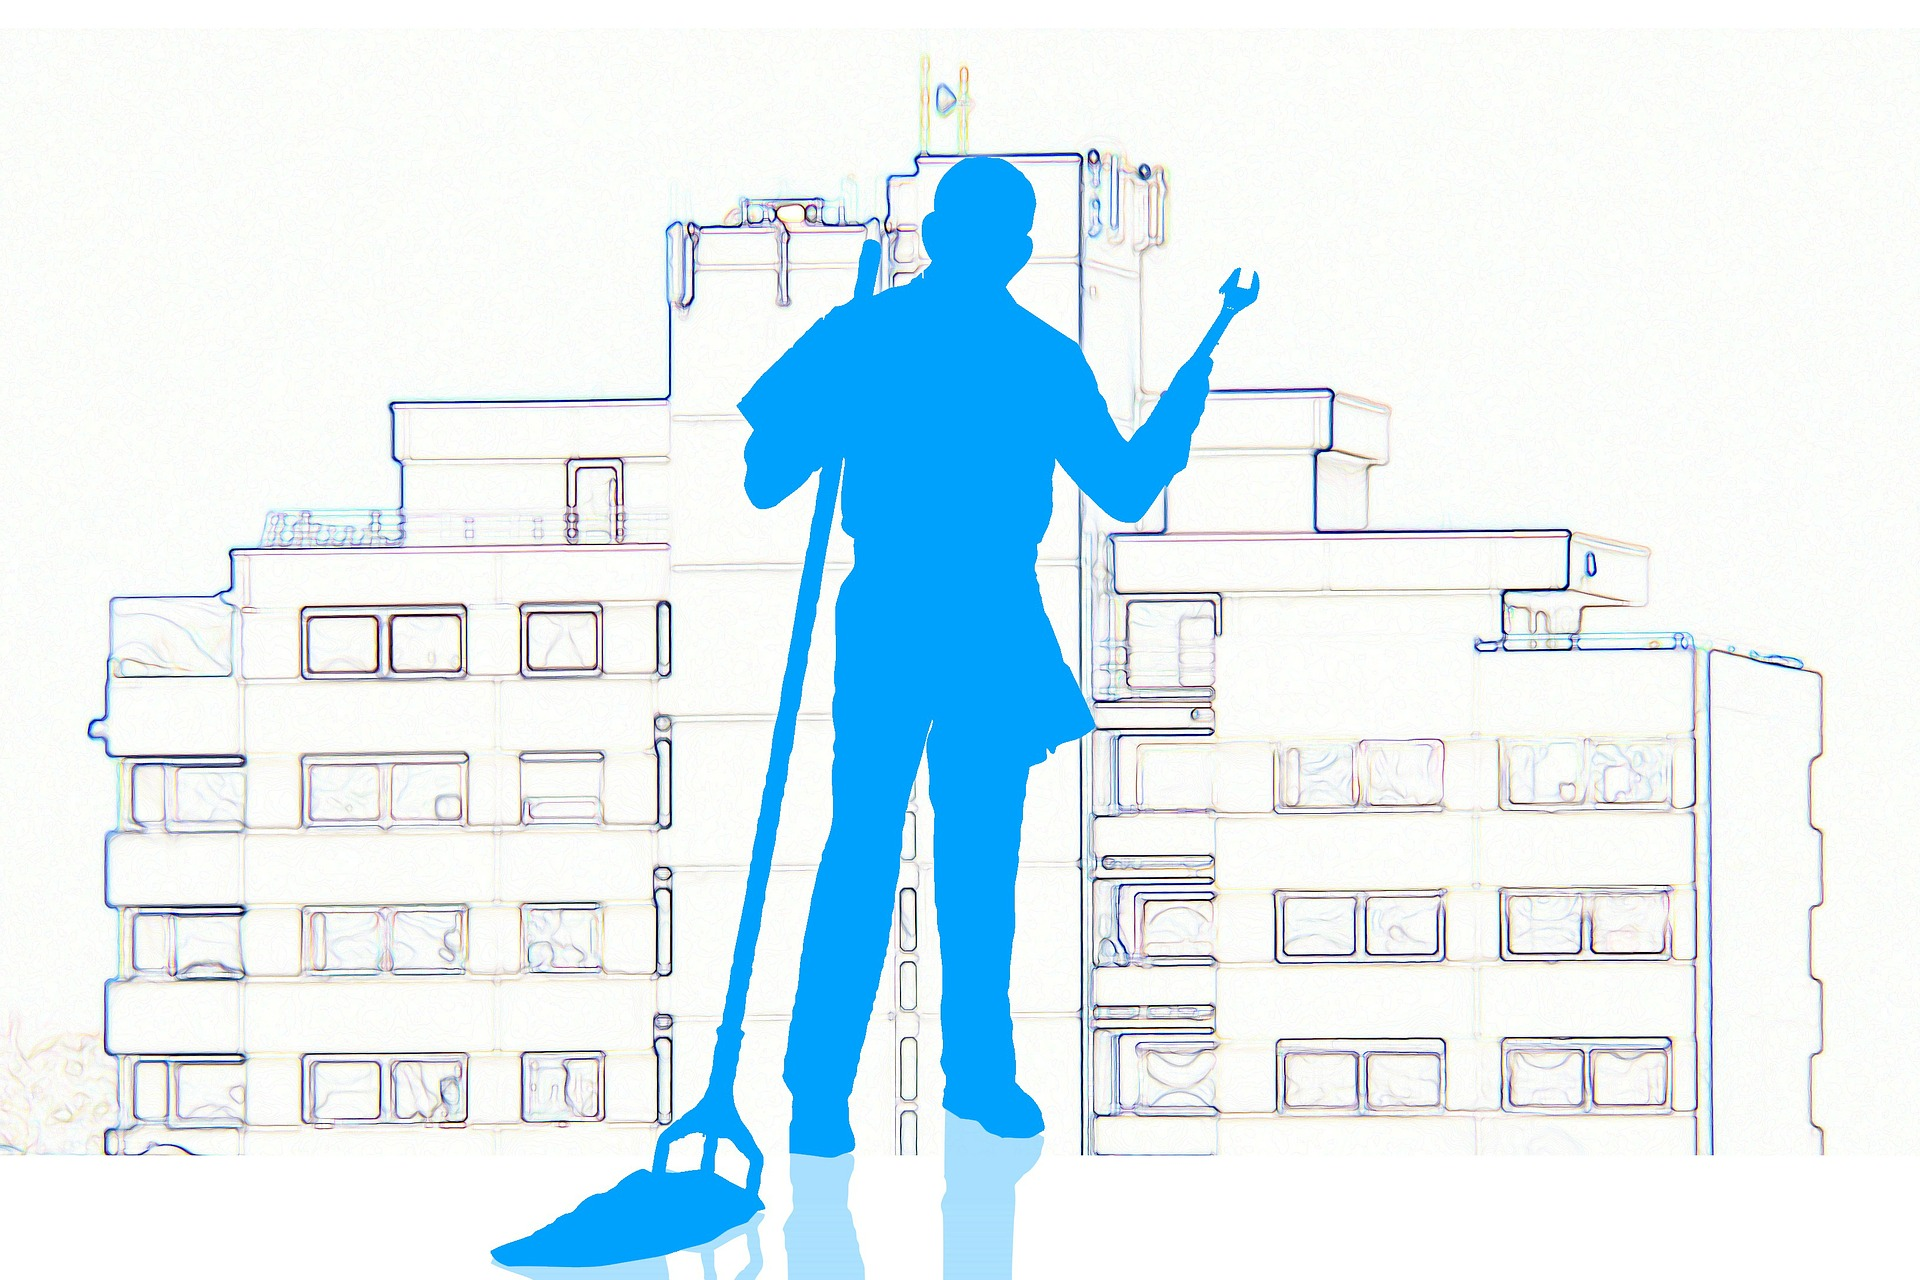 Graphic Design image of a janitor holding a mop standing in front of a building